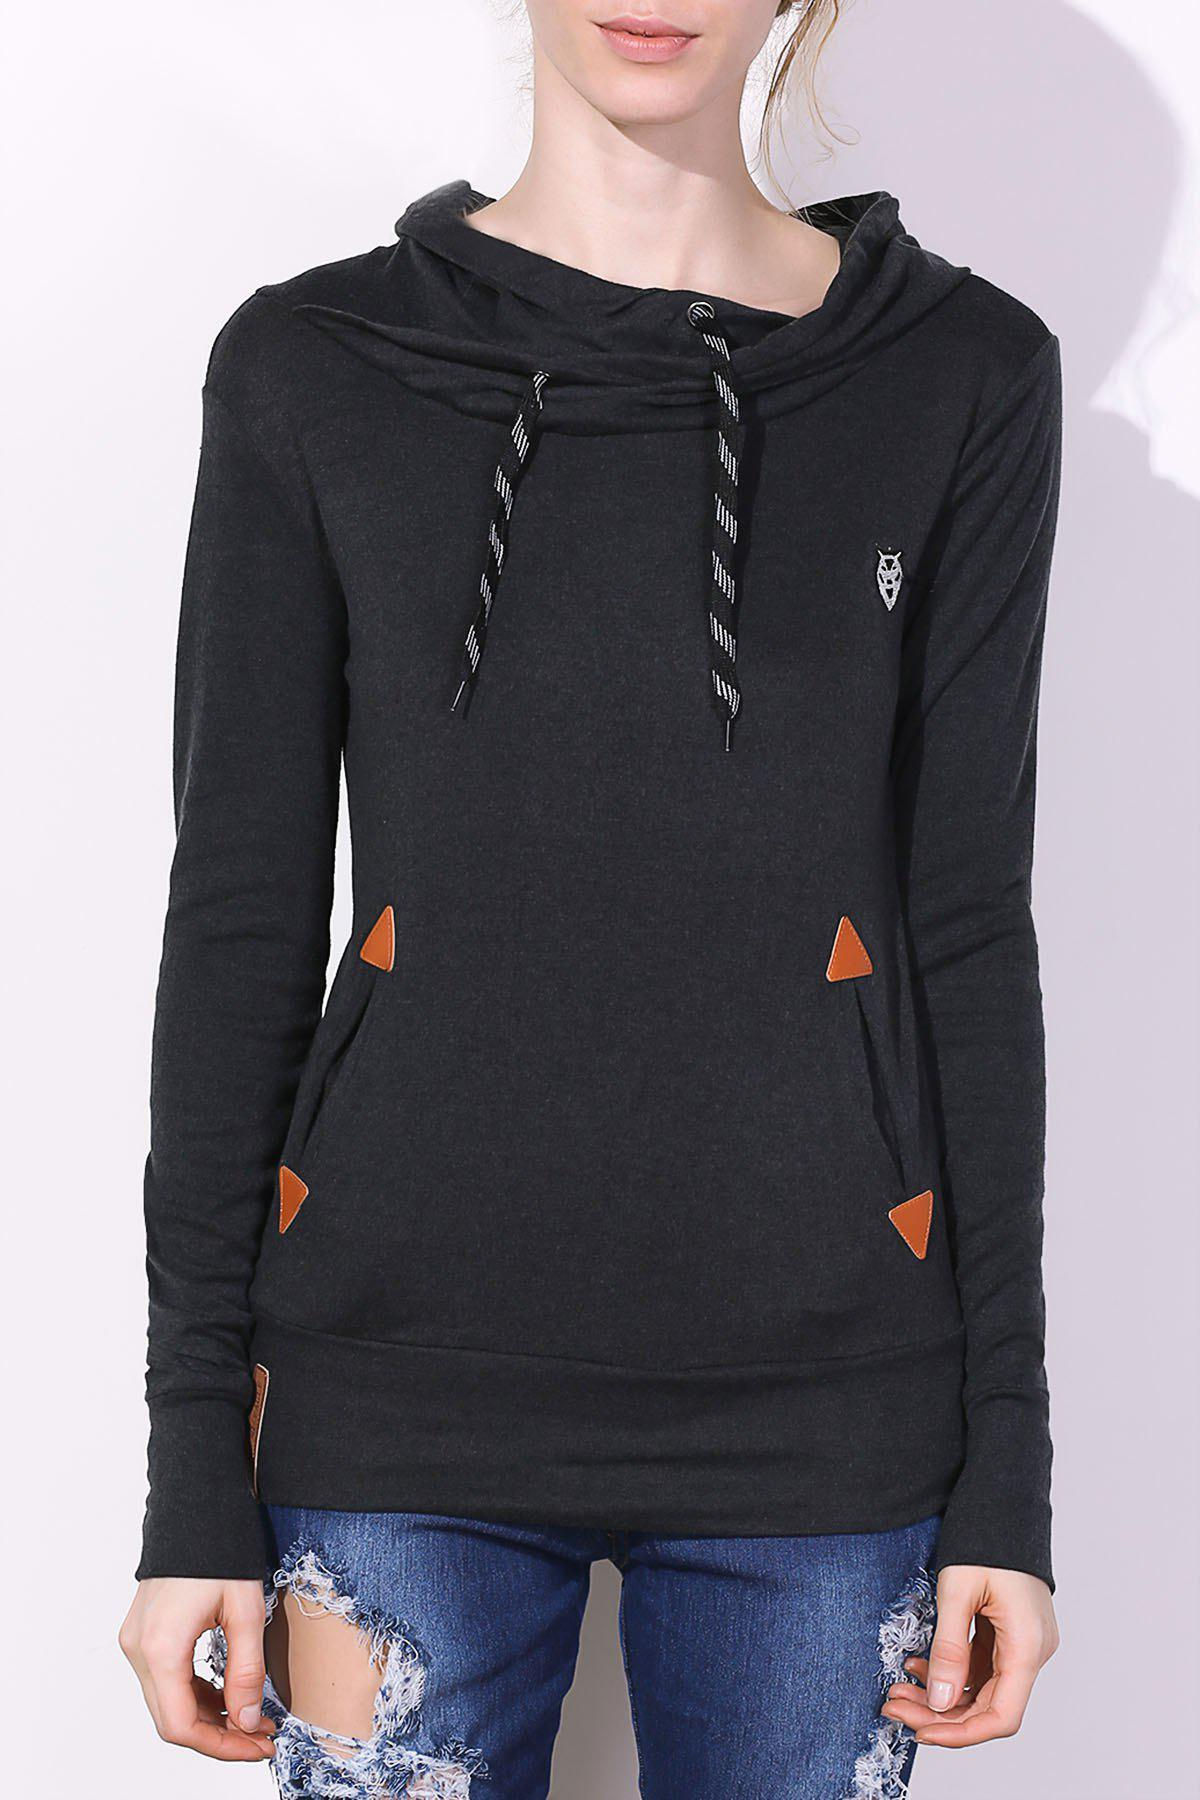 Drawstring Pocket Design Embroidered HoodieWOMEN<br><br>Size: S; Color: BLACK; Material: Polyester; Shirt Length: Long; Sleeve Length: Full; Style: Fashion; Pattern Style: Patchwork; Weight: 0.420kg; Package Contents: 1 x Hoodie;